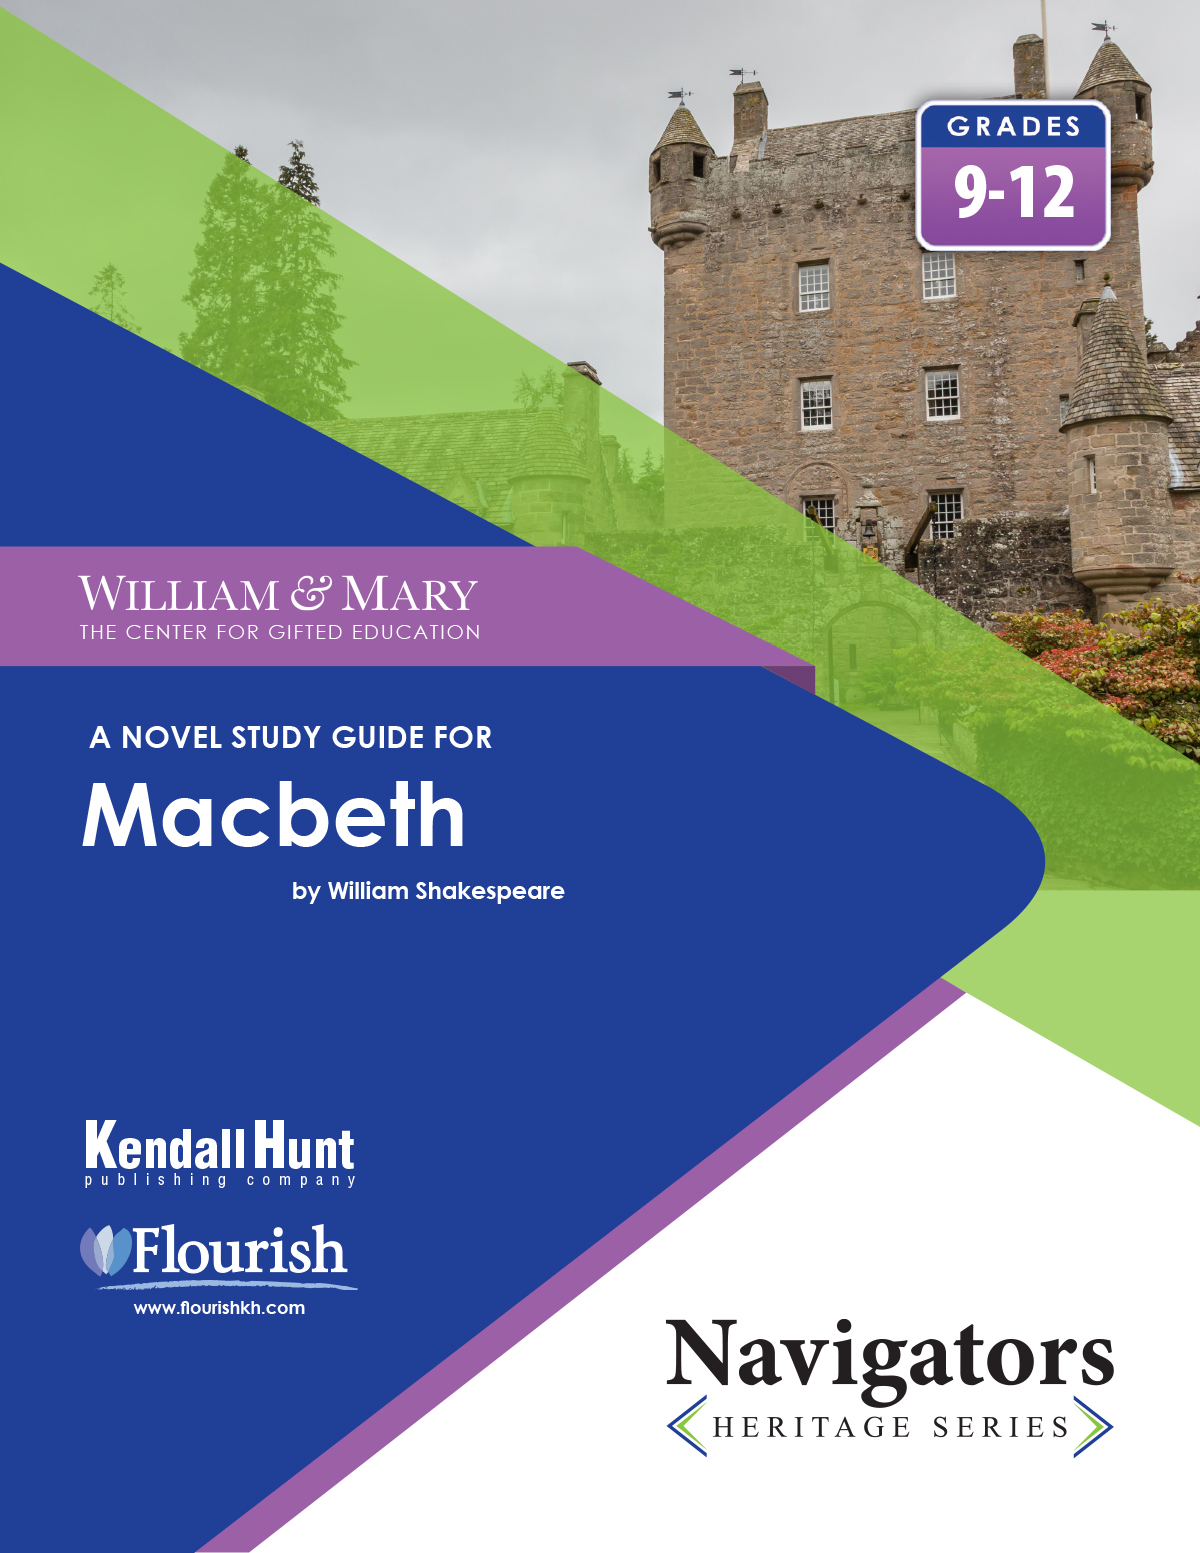 William & Mary Navigator Macbeth